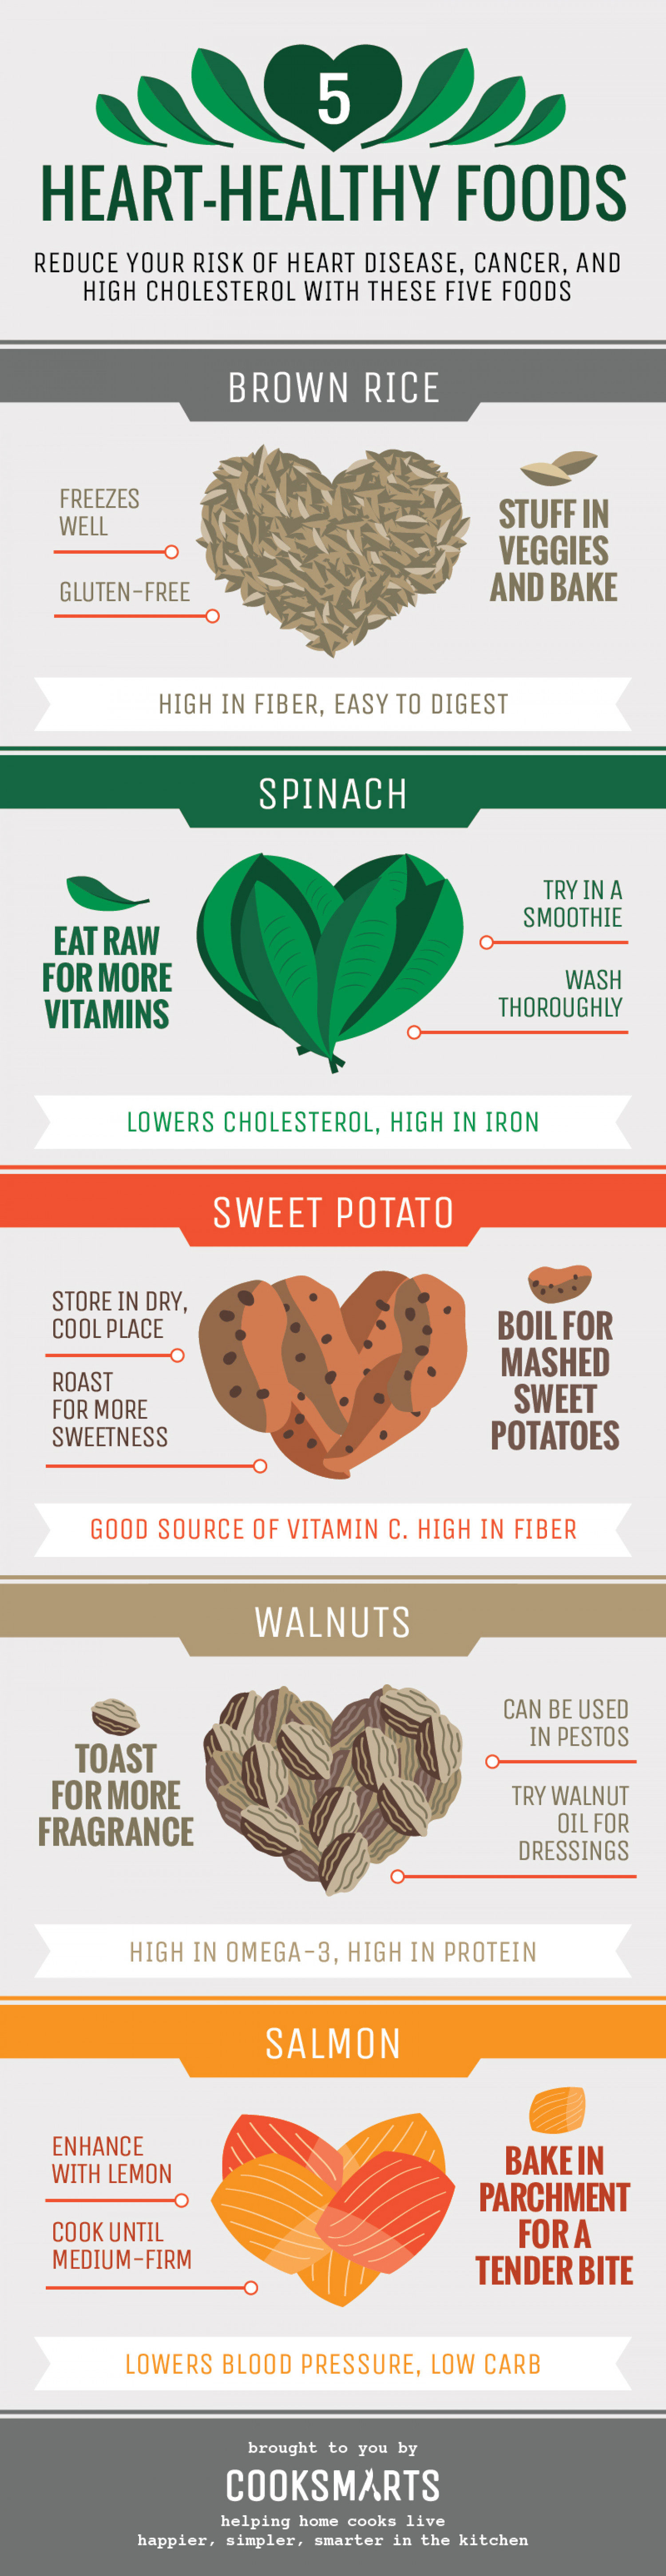 5 Heart Healthy Foods Infographic